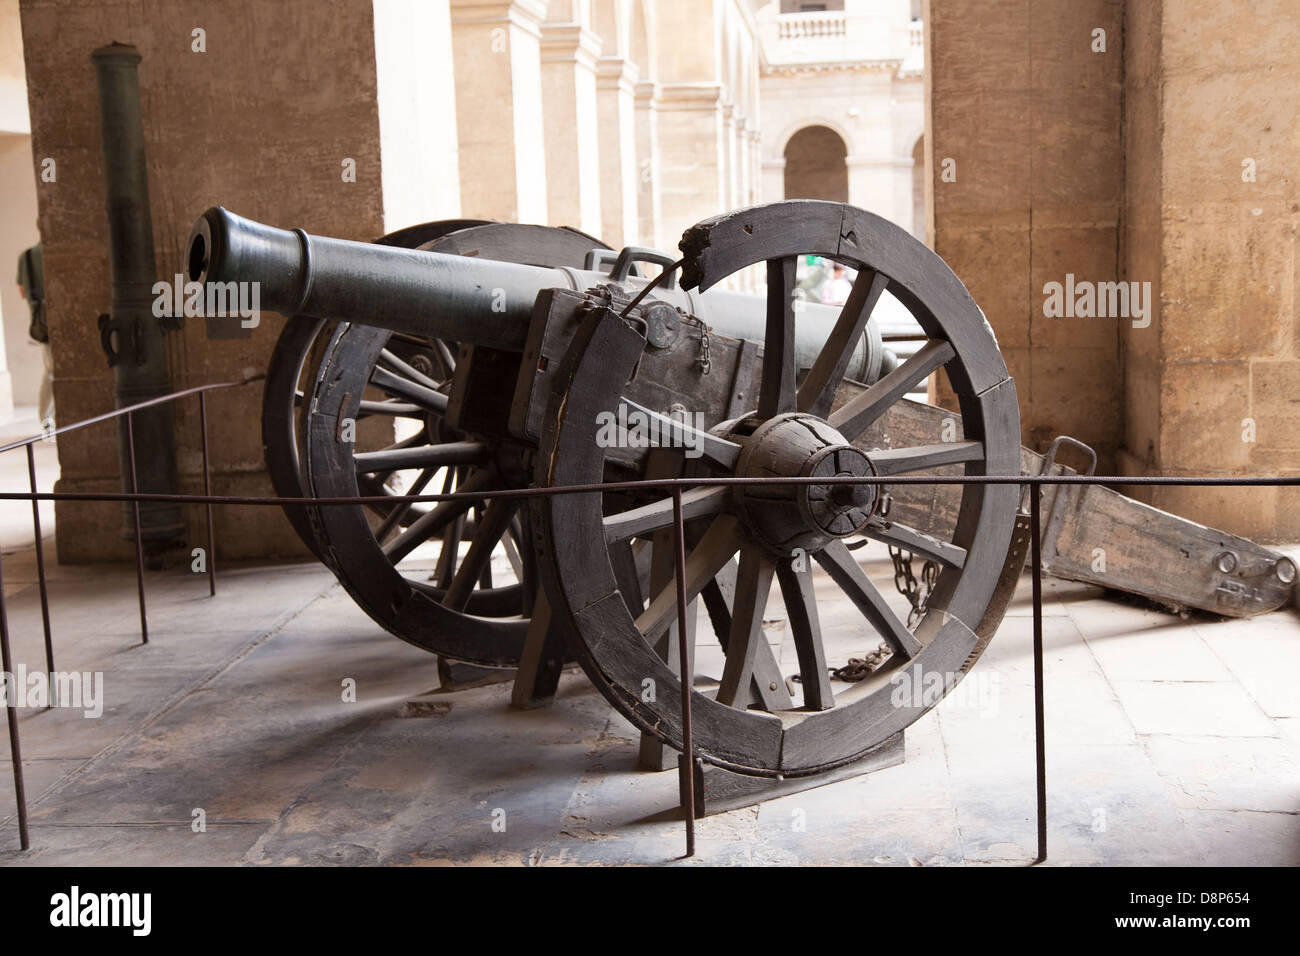 Cannon Heavy weapon Military Steel Wheel Wood - Army museum / Les Invalides / Philippe Sauvan-Magnet / Active Museum - Stock Image